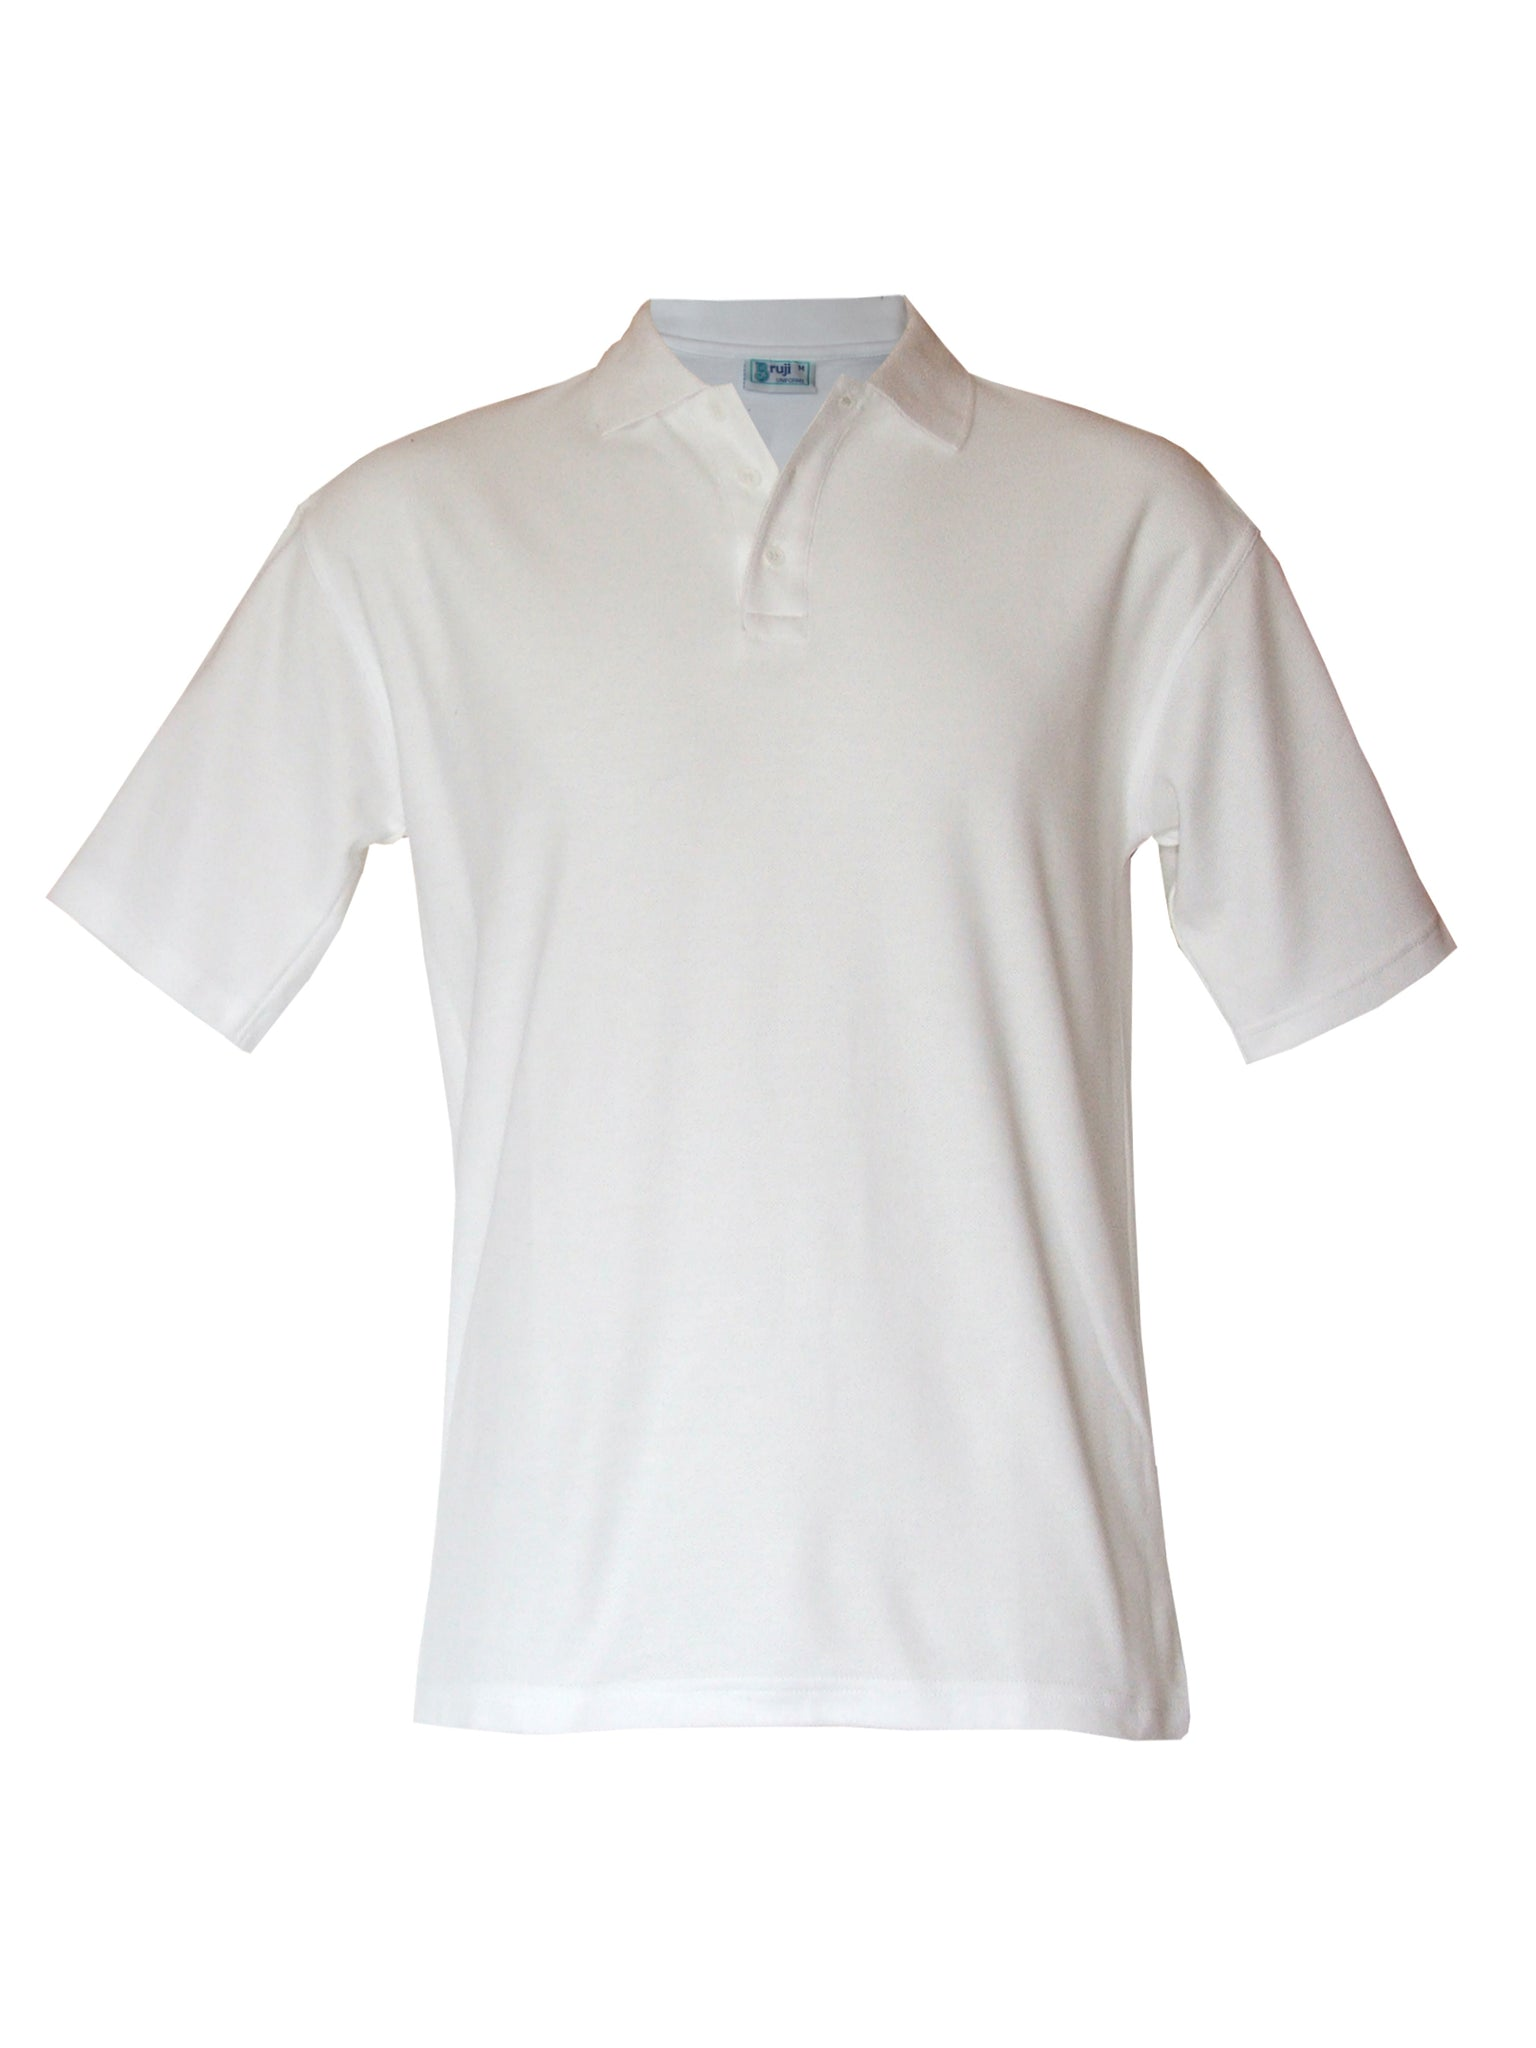 PP1 Unisex Short Sleeve Polo - White